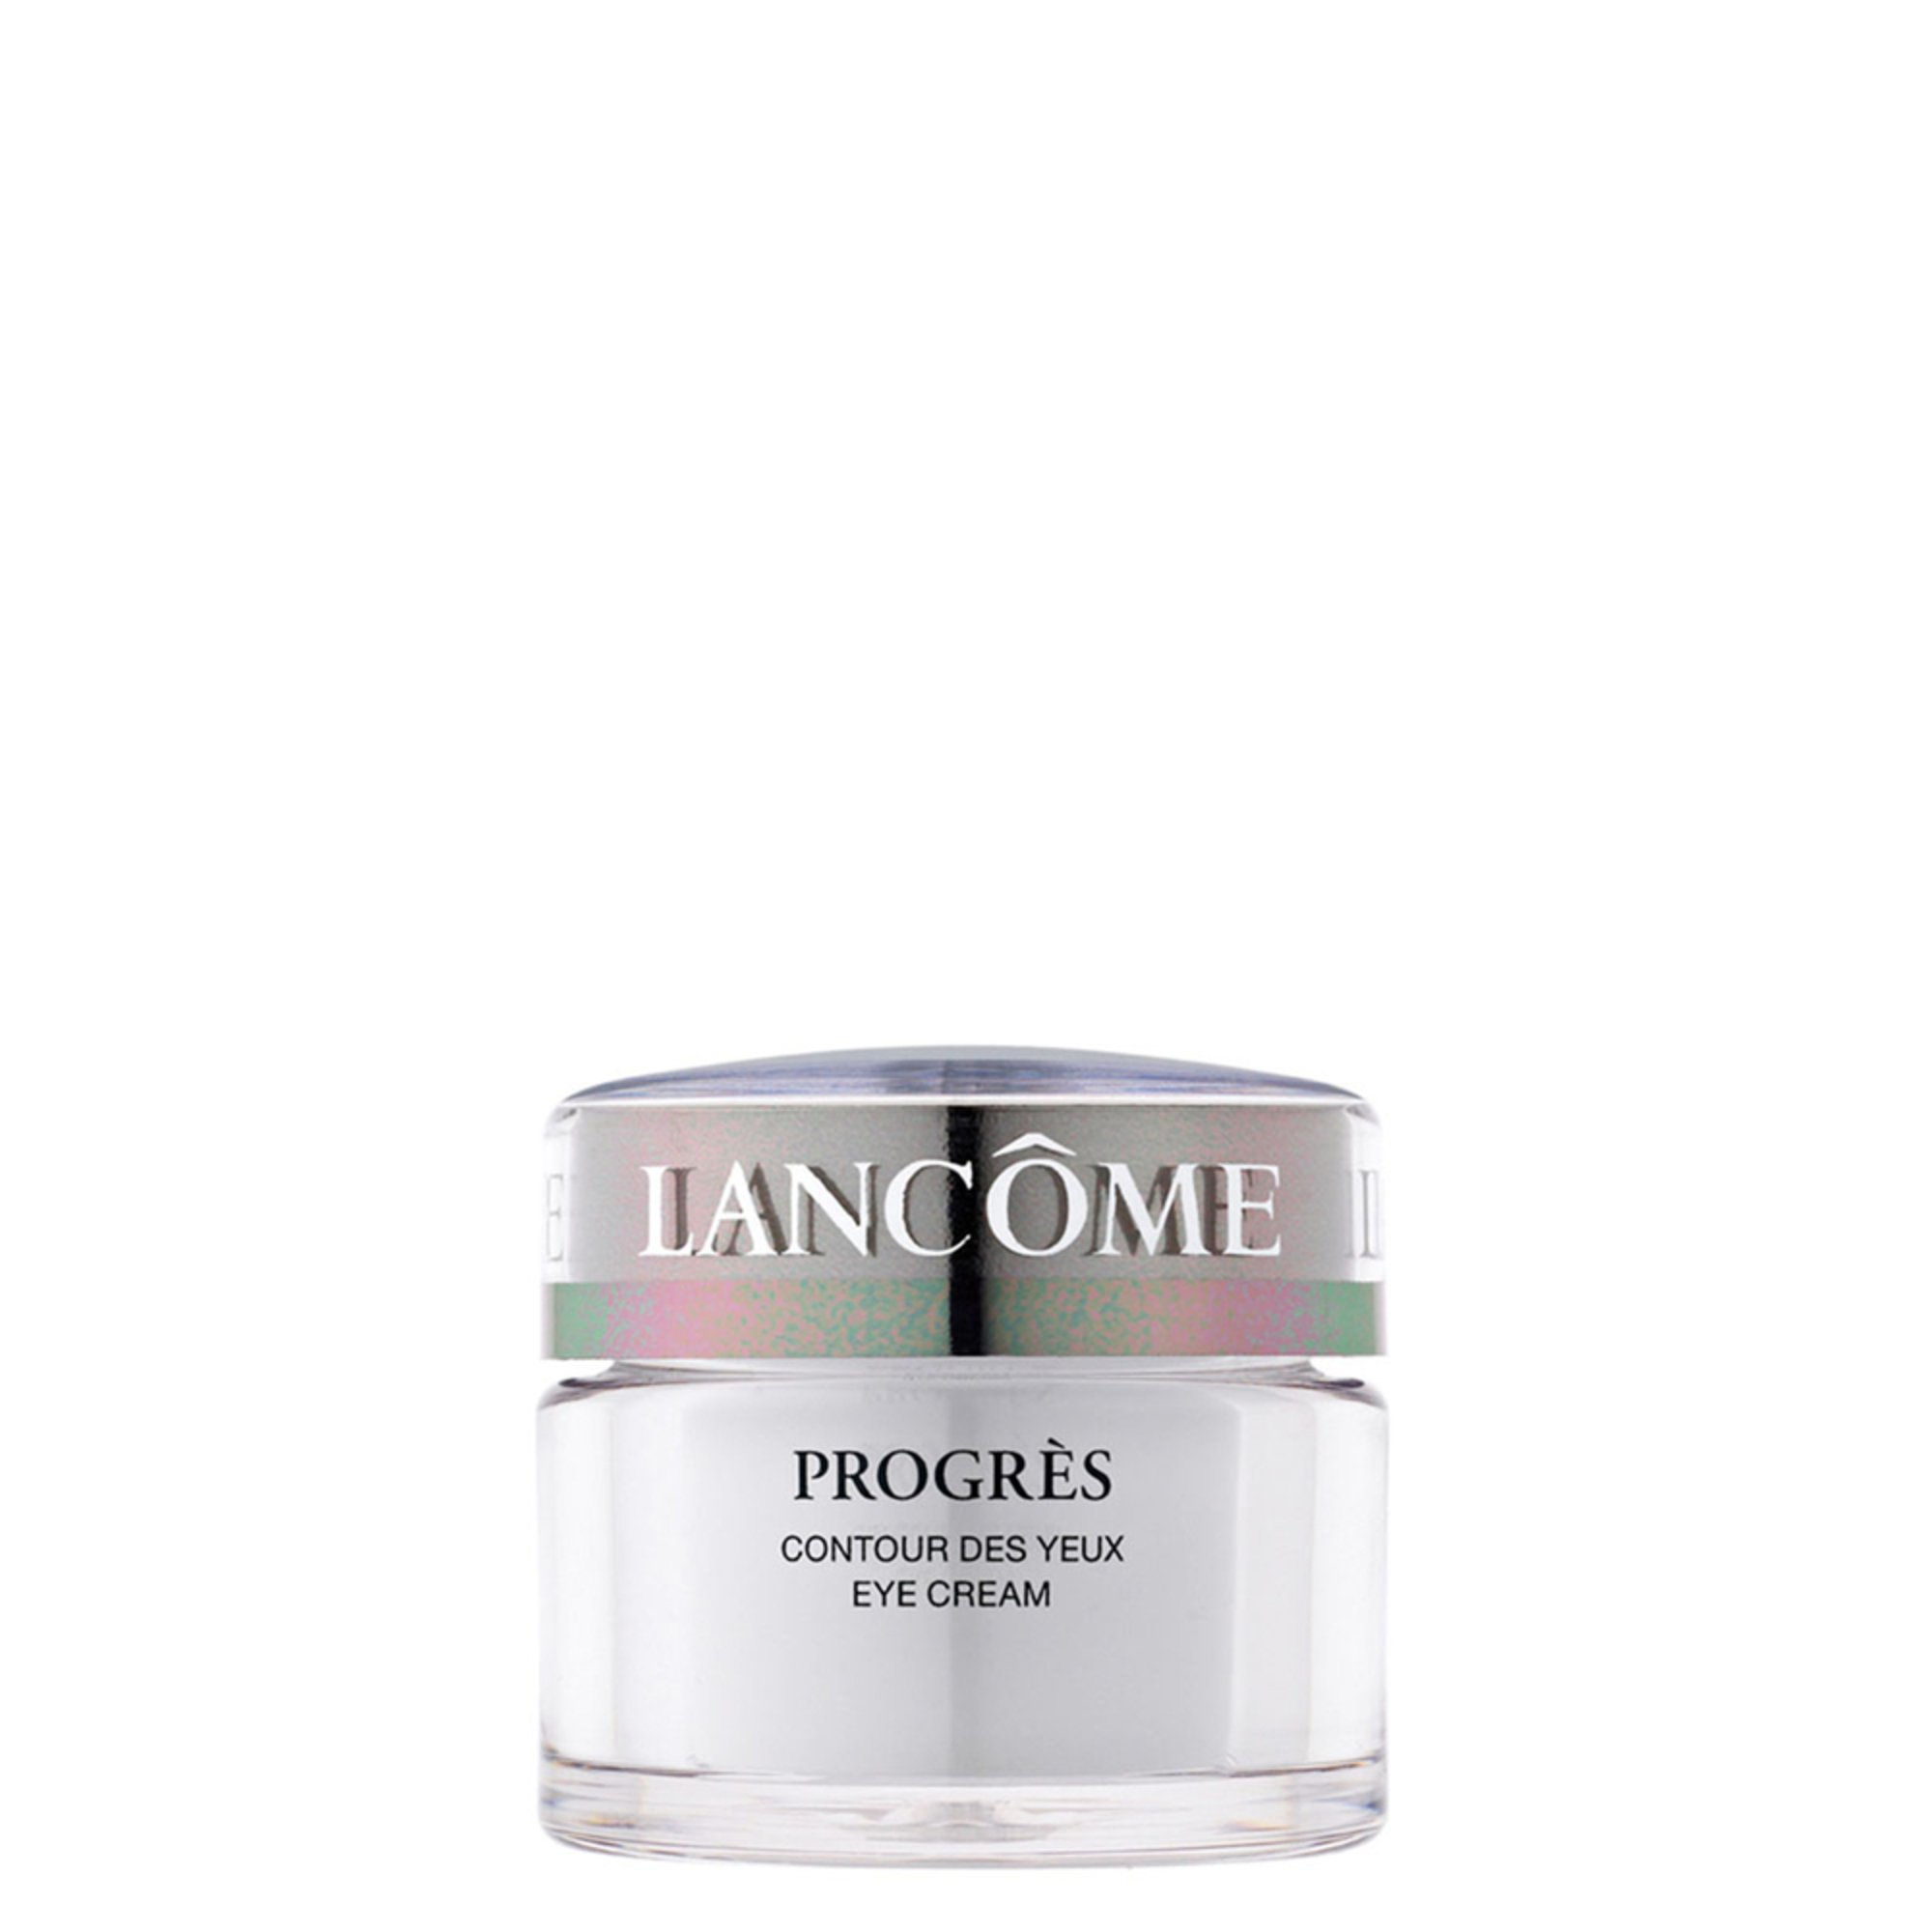 Lancôme Progrès Eye Cream Reviews 2019 - Influenster